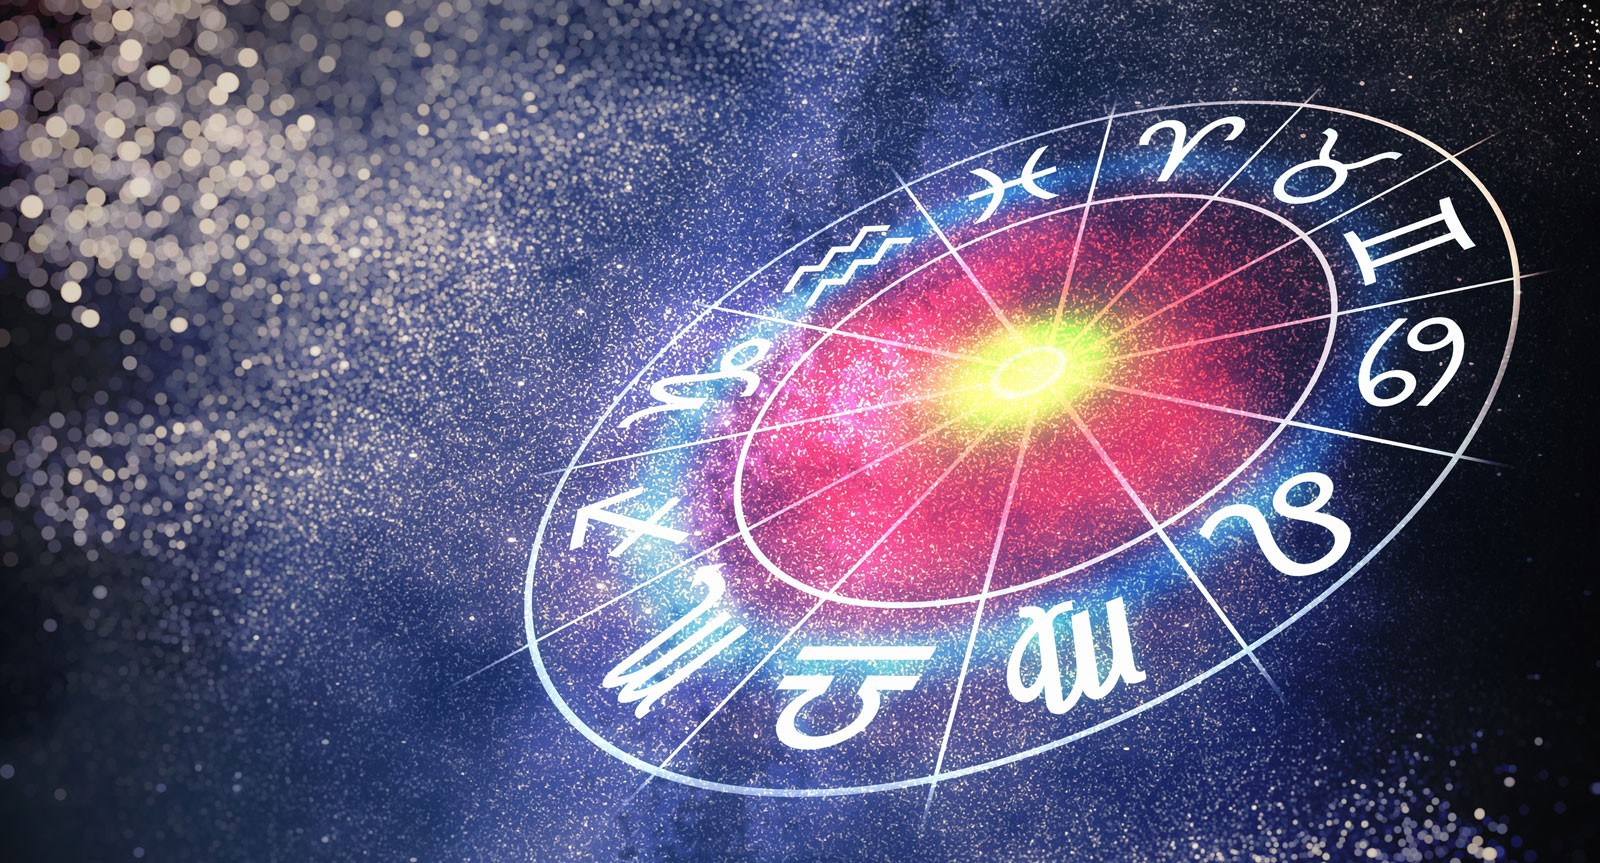 Zodiac signs and meanings of astrology signs on whats your sign your zodiac signs and meanings stopboris Choice Image